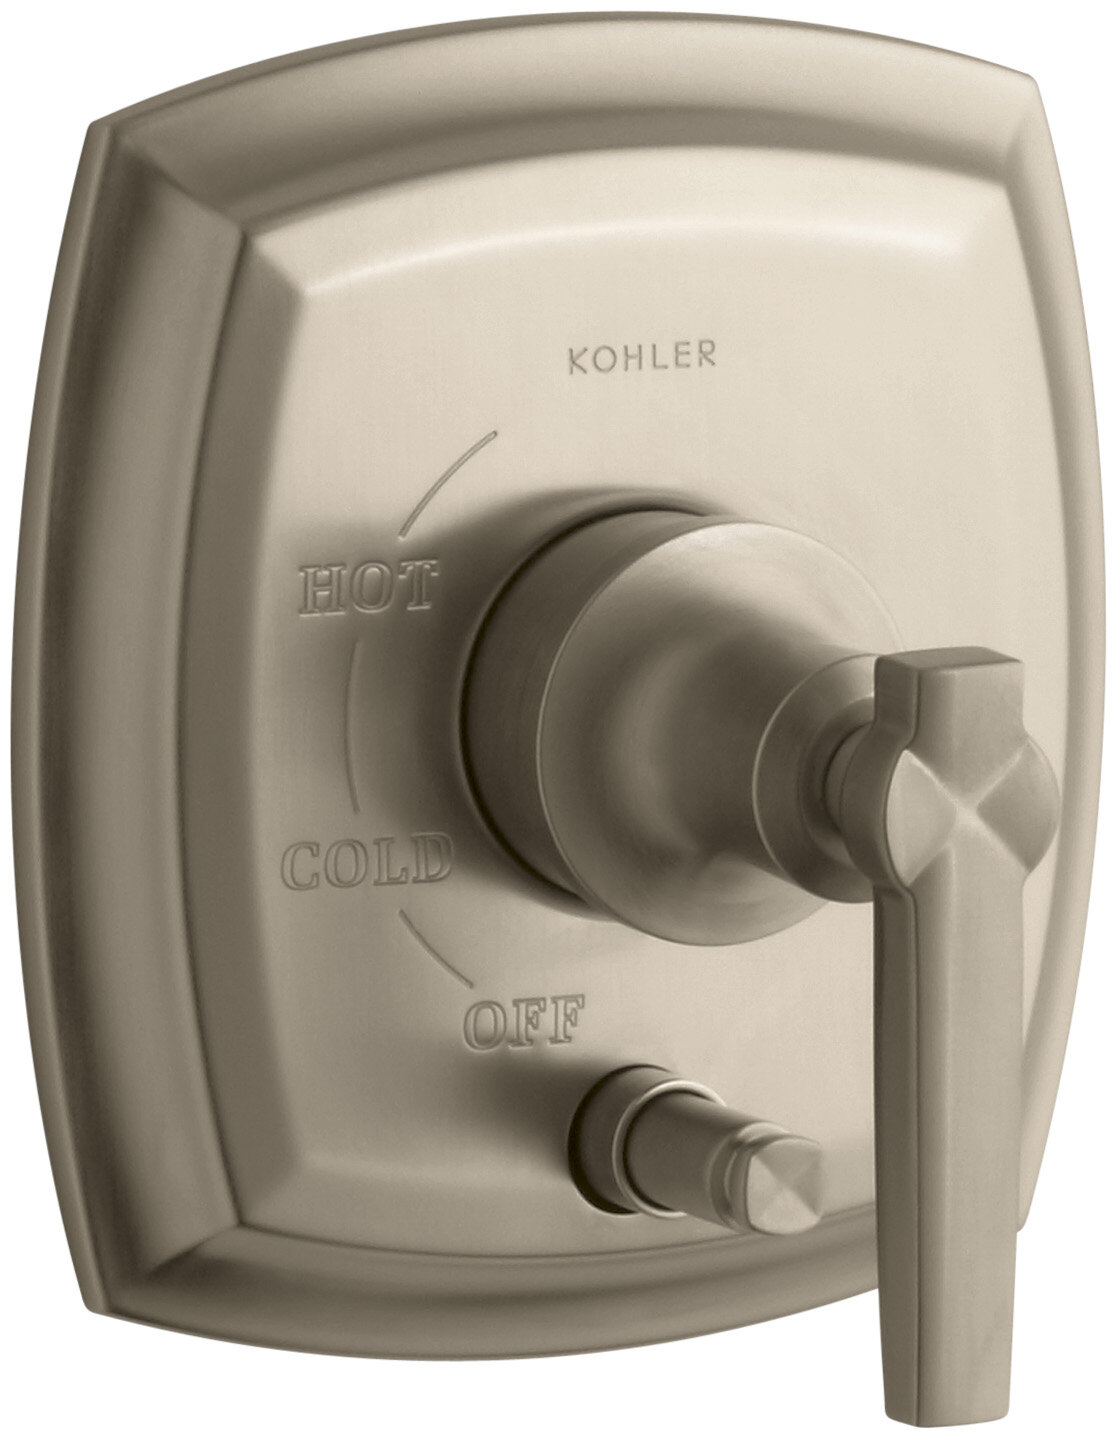 Valve not Include Polished Chrome Kohler K-T98759-3-CP Margaux Rite-Temp Pressure-Balancing Trim with Push-Button Diverter and Cross Handles